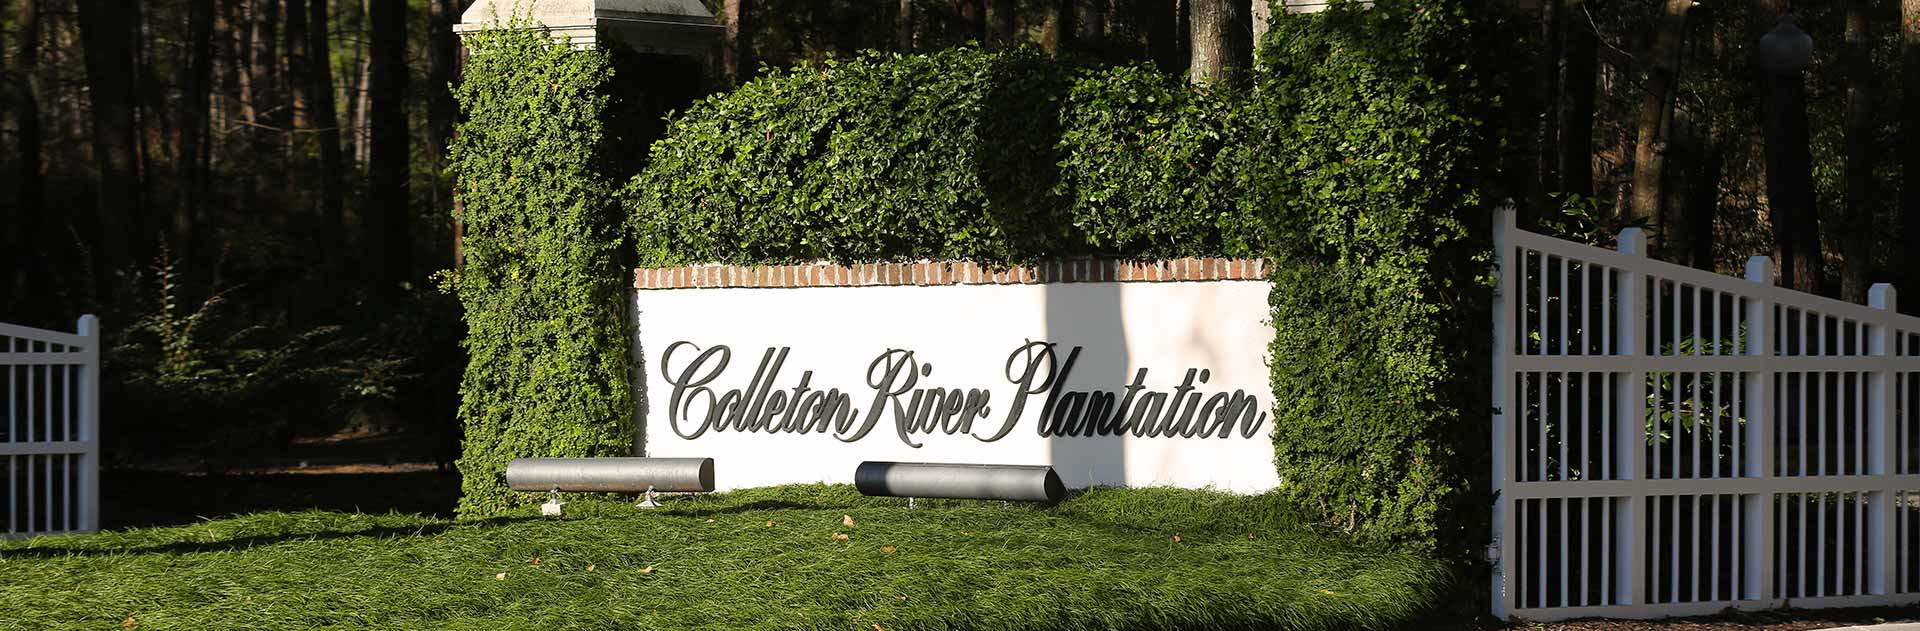 Colleton River Plantation Community Sign